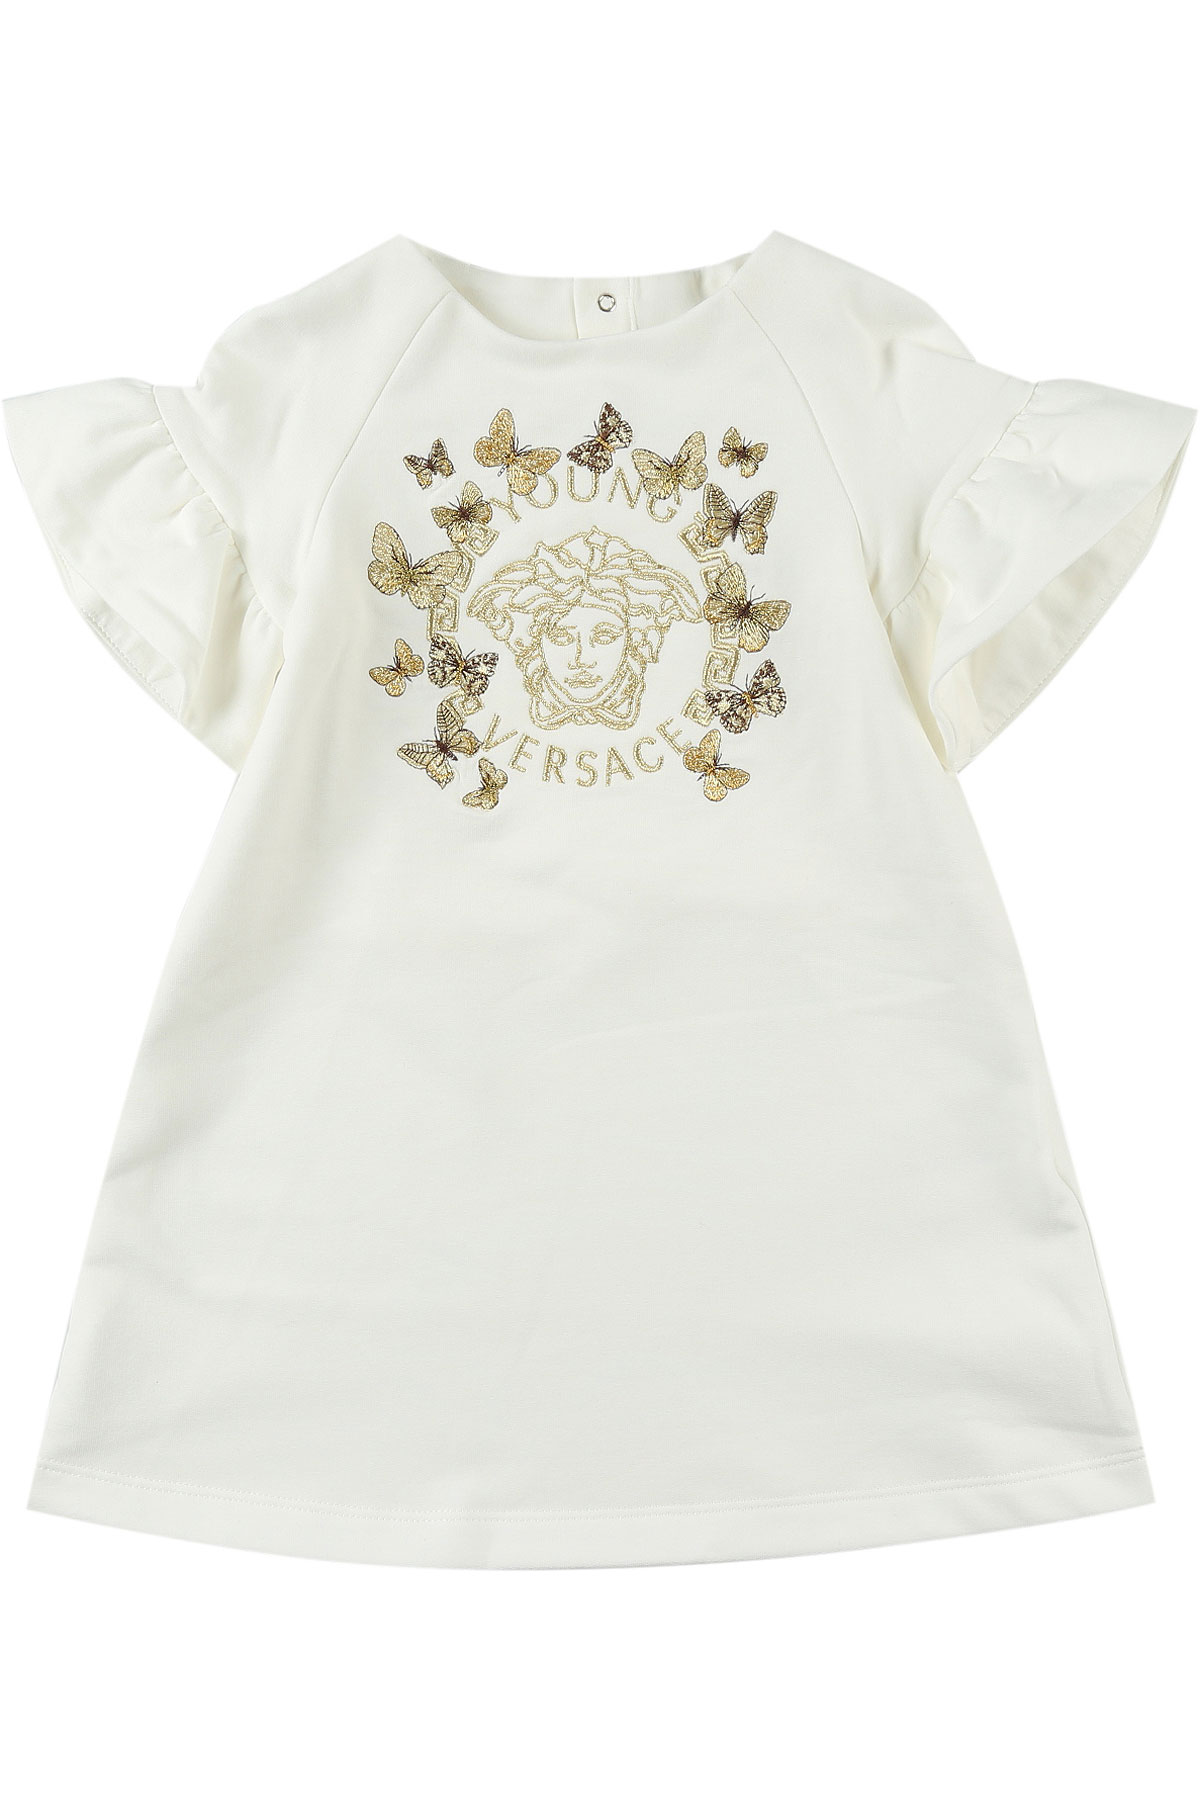 Image of Versace Baby Dress for Girls, White, Cotton, 2017, 12M 18M 2Y 3Y 6M